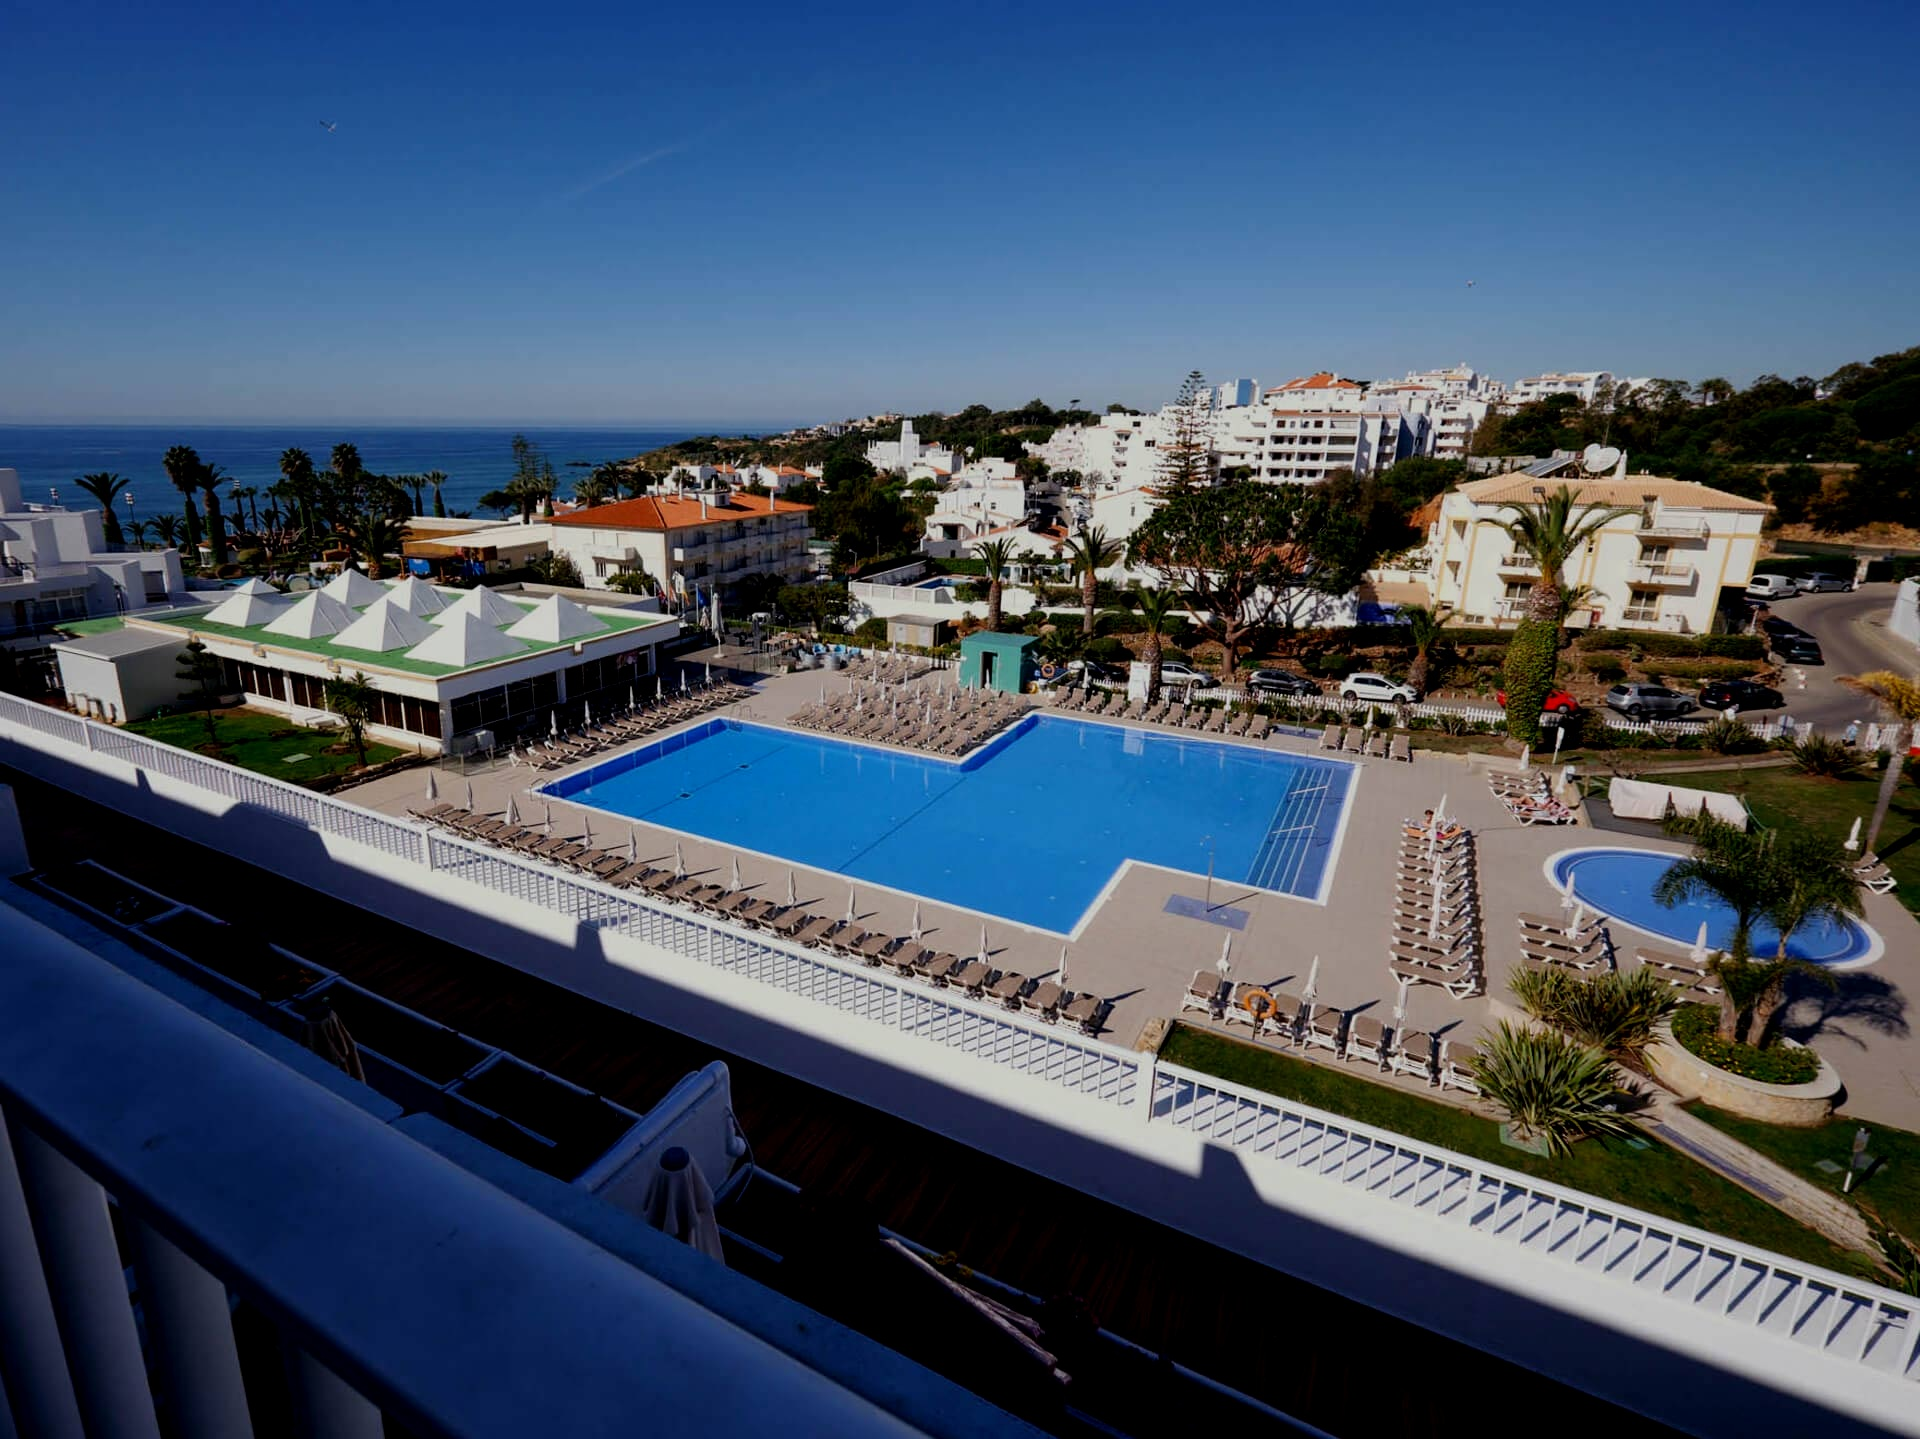 Hotel - 4 Star Hotel? On the beach? 2mins from all the events? Perfect!